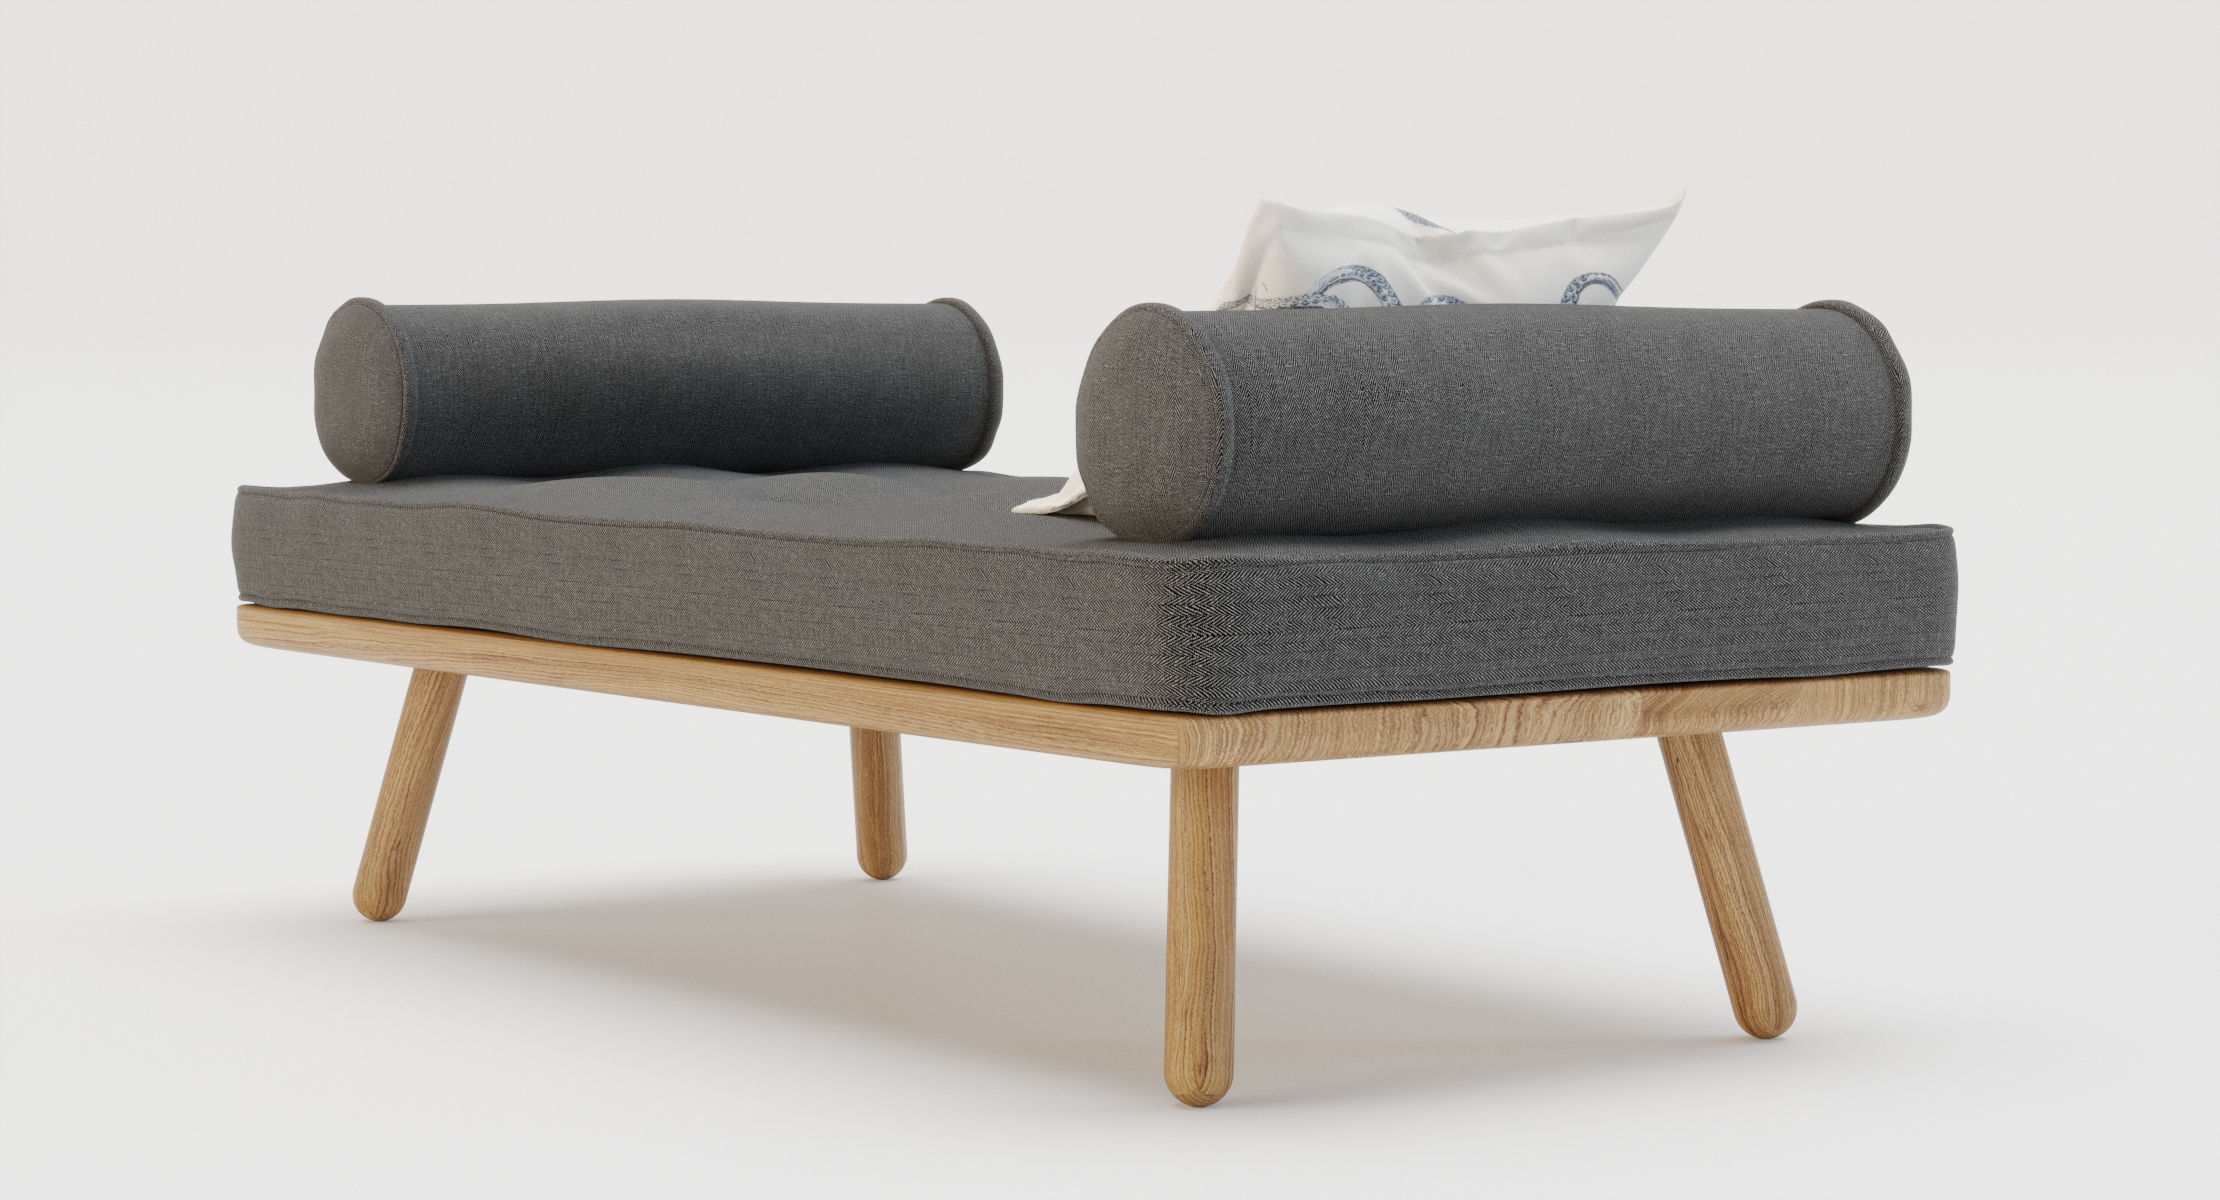 3d Model Furniture Day Bed One Another Country 3 ~ Another Name For Sofa Bed